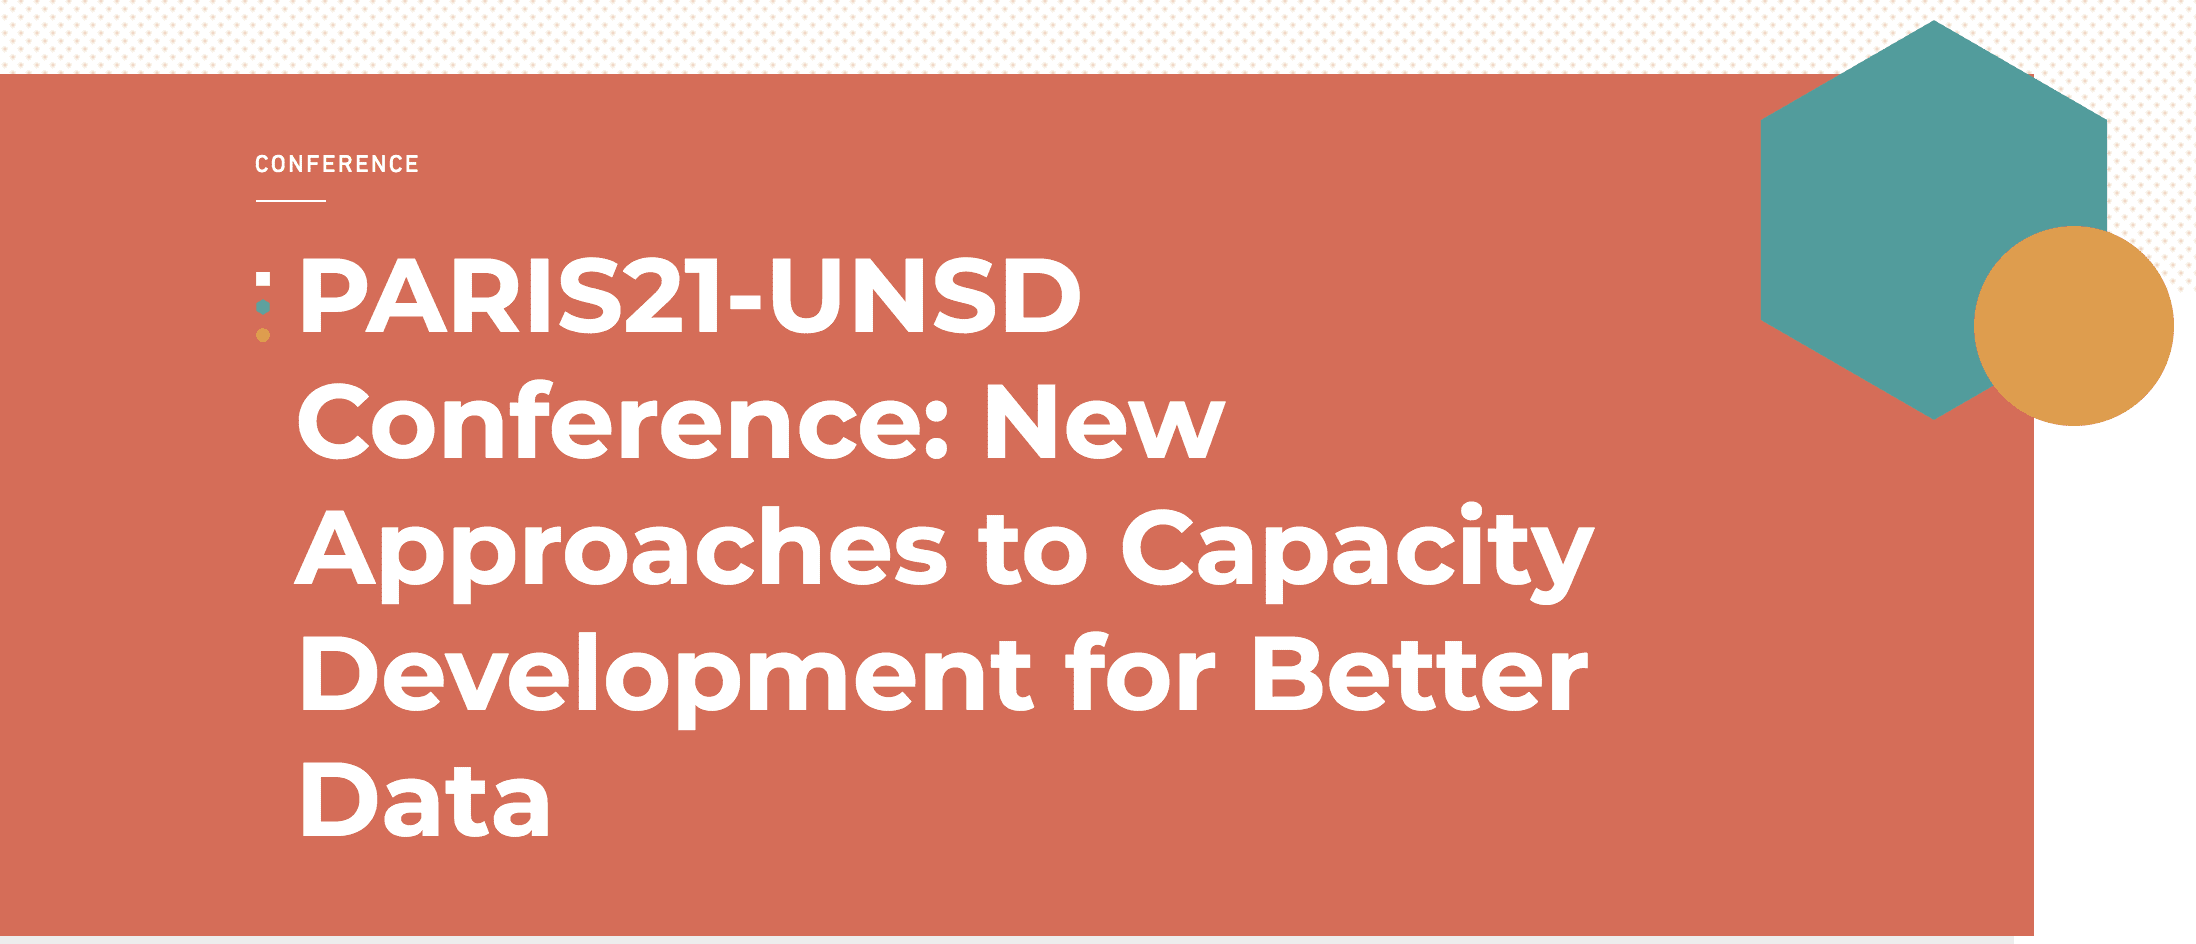 PARIS21-UNSD Conference: New Approaches to Capacity Development for Better Data 1